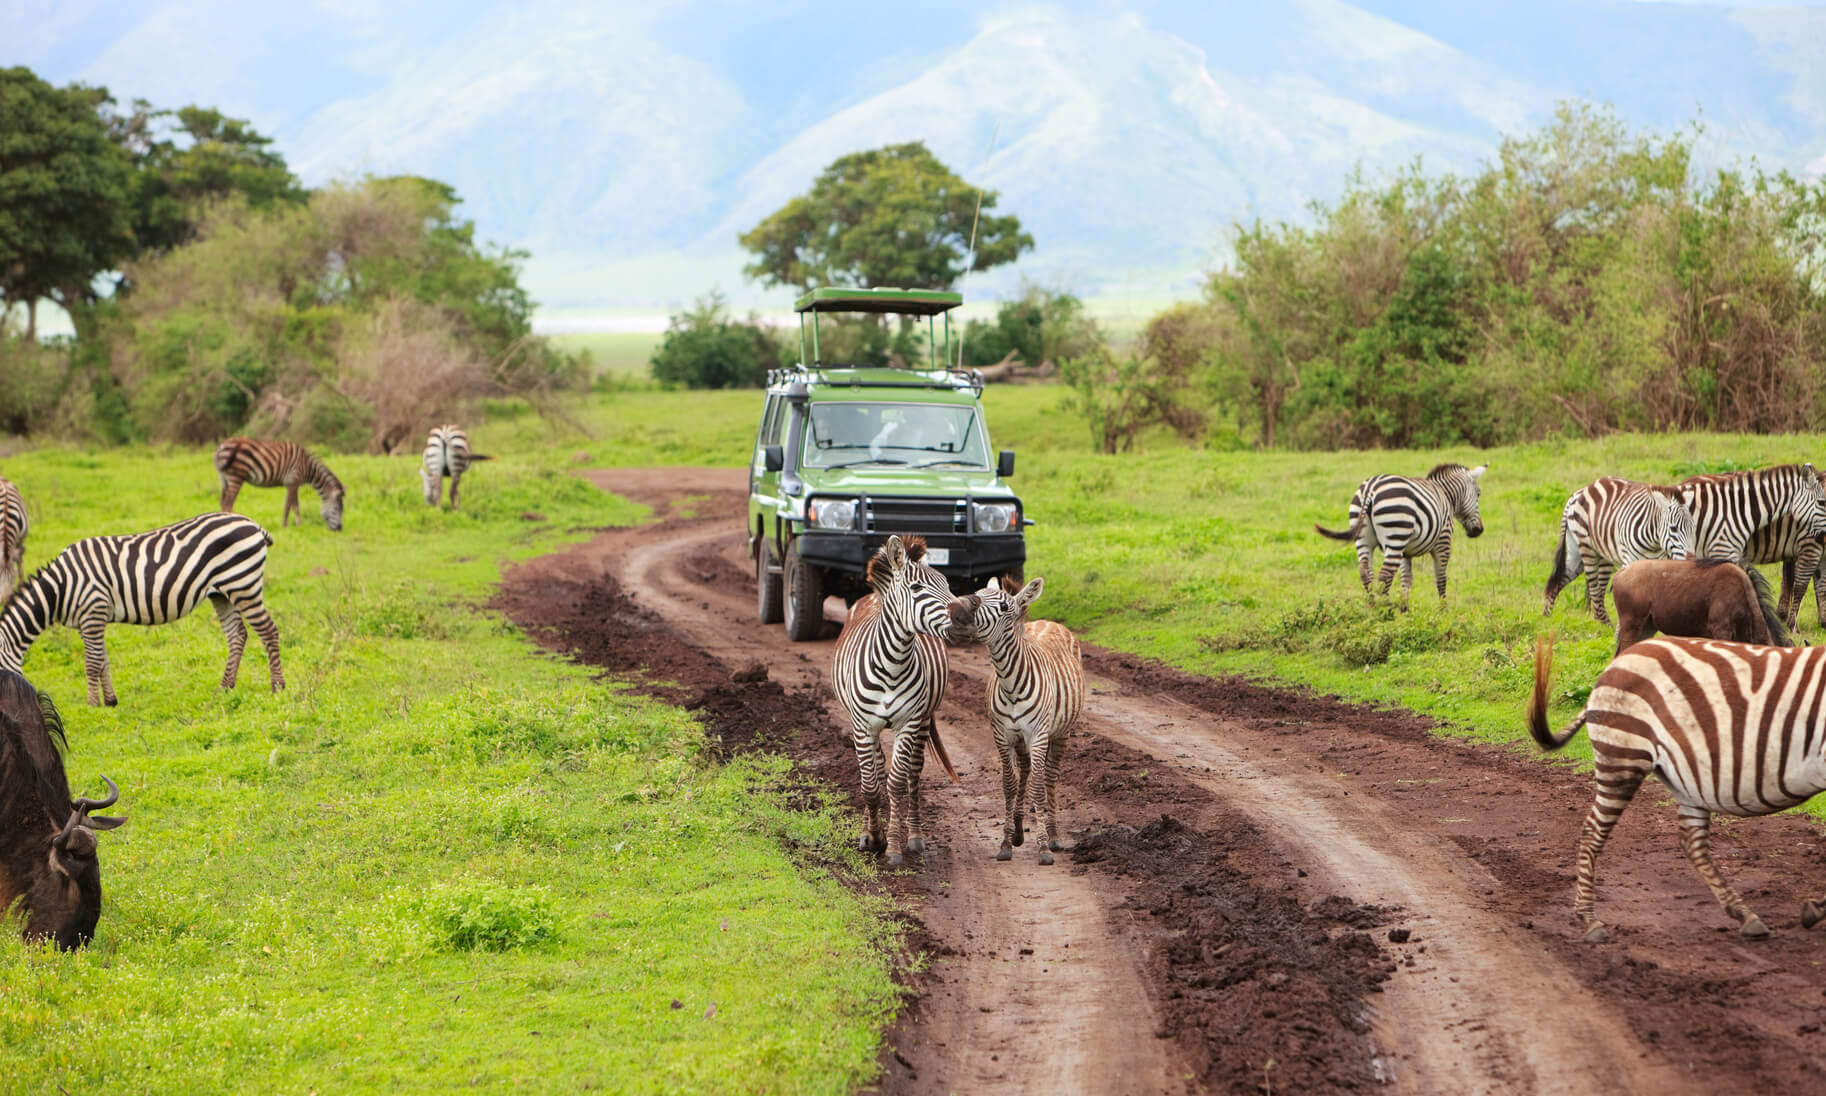 Dallas, Texas to Nairobi, Kenya for only $606 roundtrip (Jan-May dates)